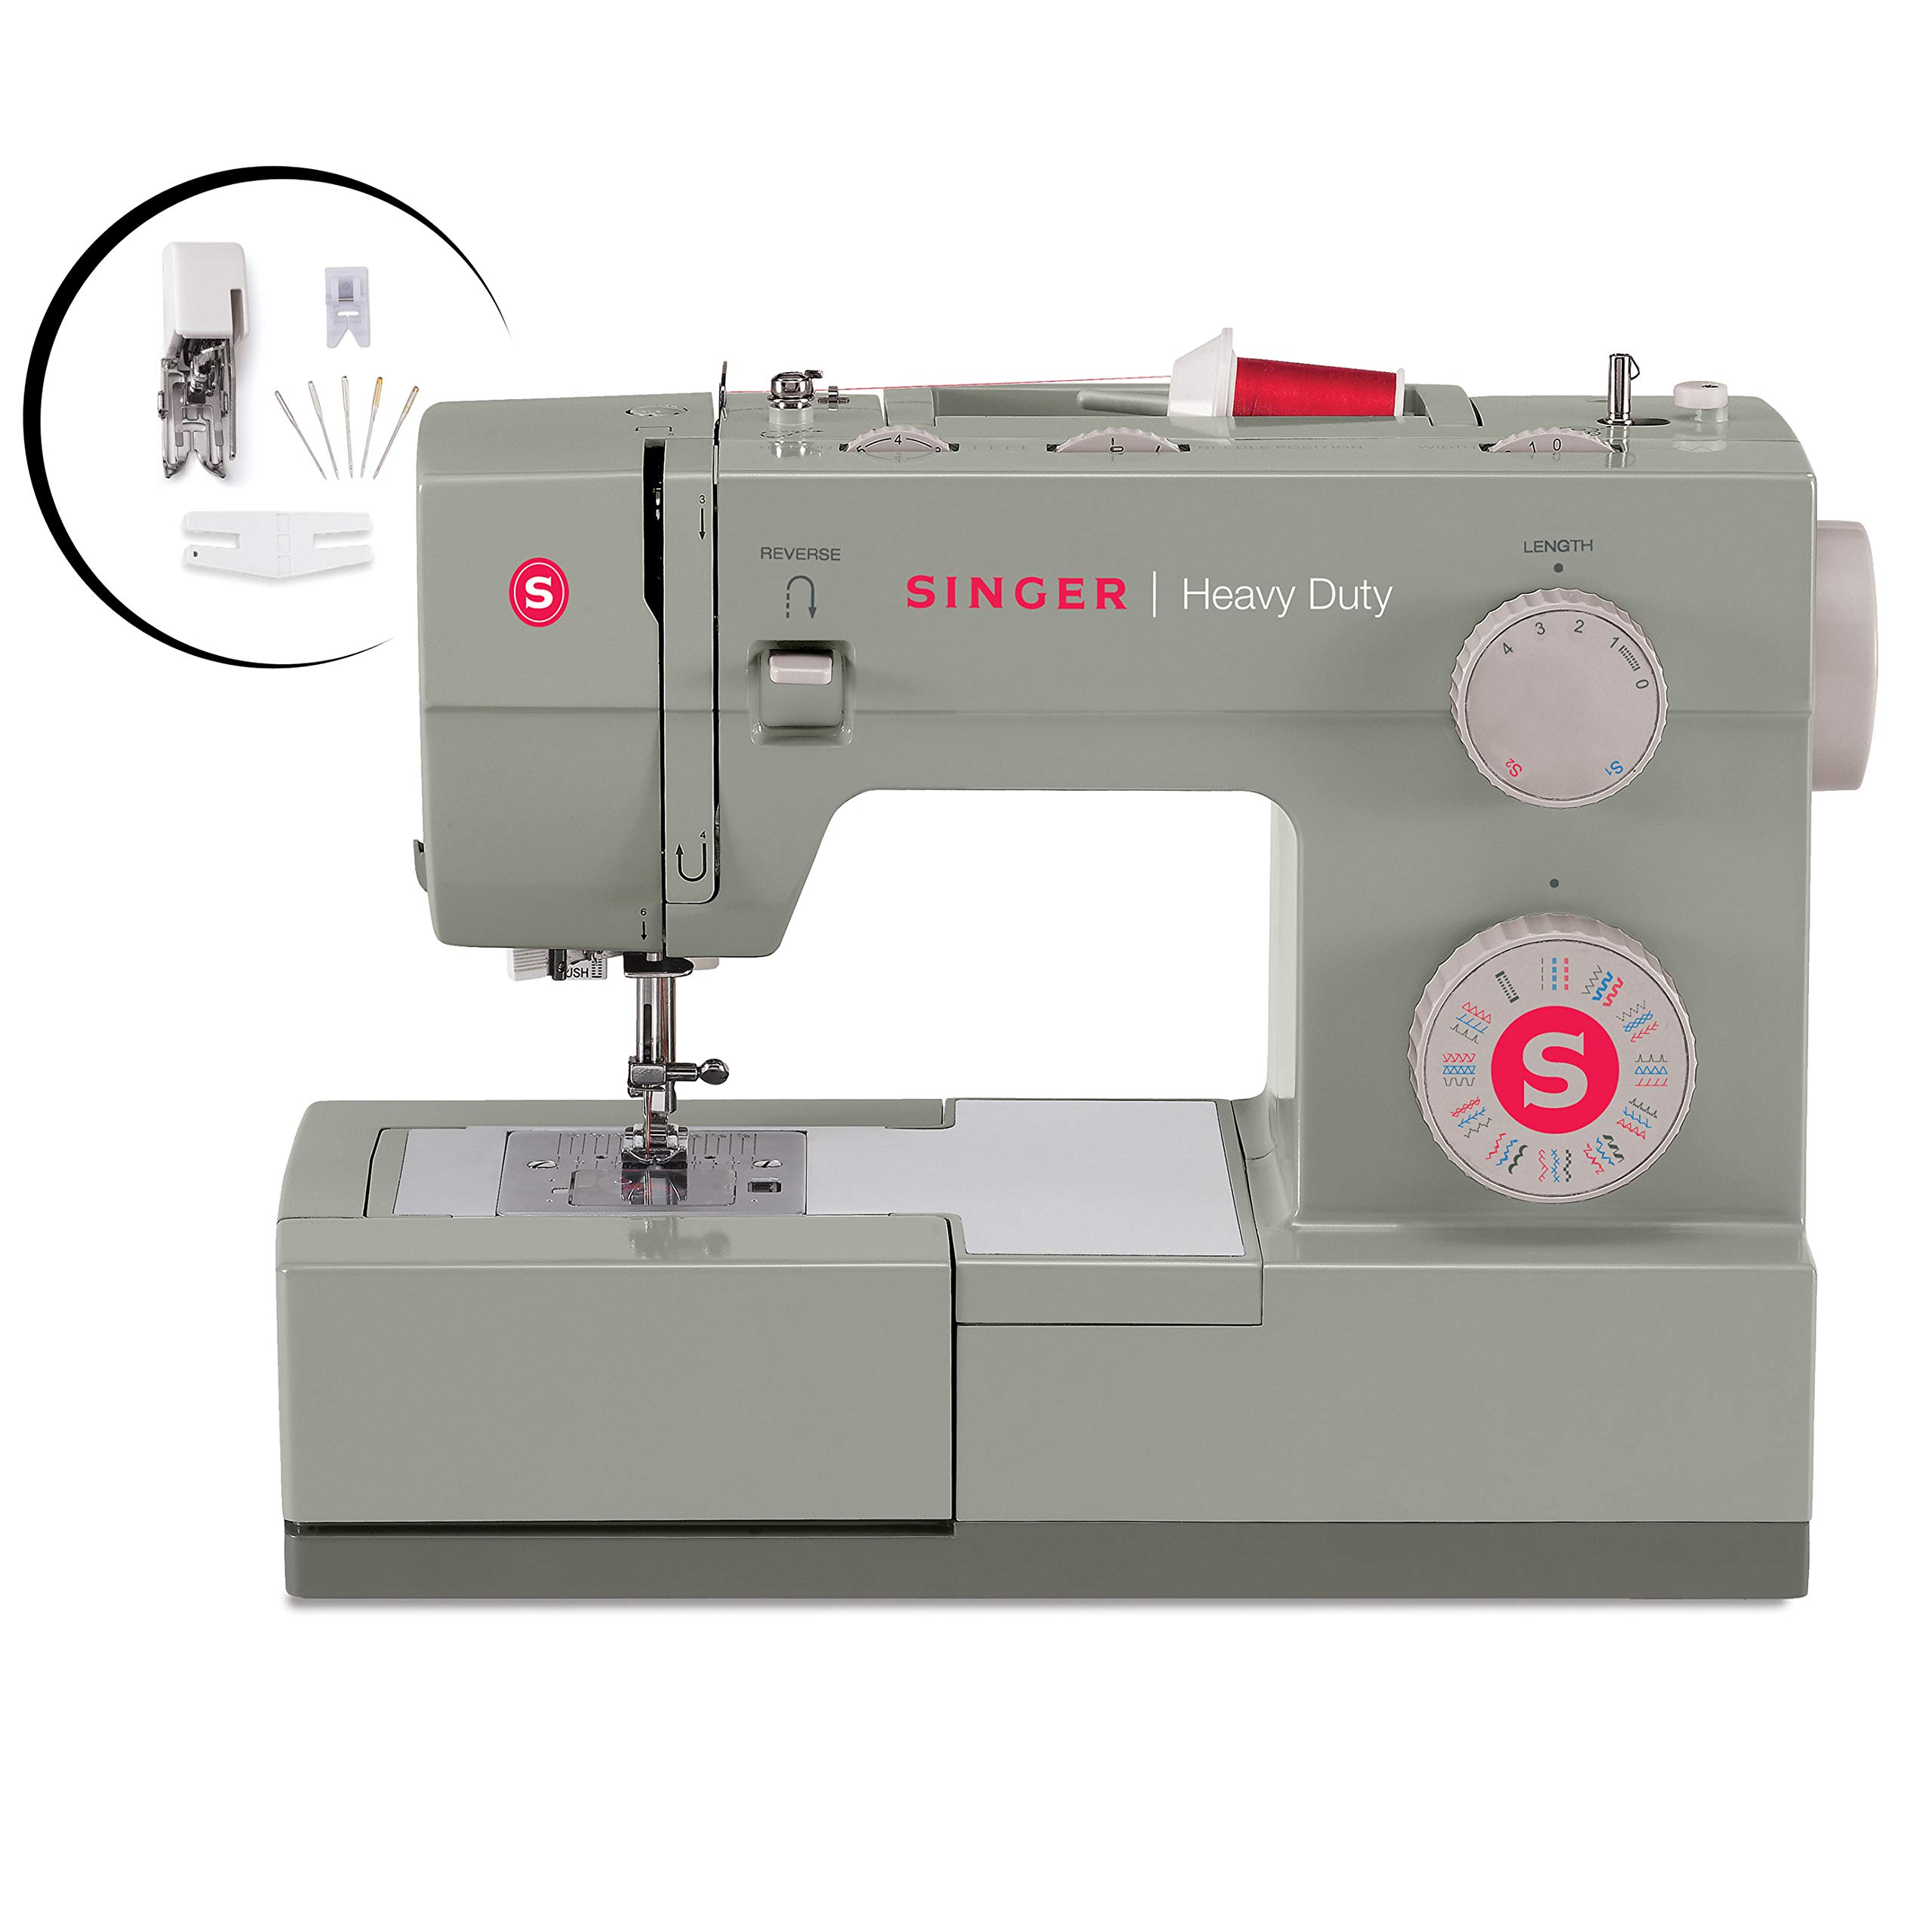 Singer  Heavy Duty 4452 Sewing Machine With Accessories, 32 Built-In Stitches, 60% Stronger Motor, Stainless Steel Bedplate, 48% Faster Stitching Speed & Automatic Needle Threader by SINGER